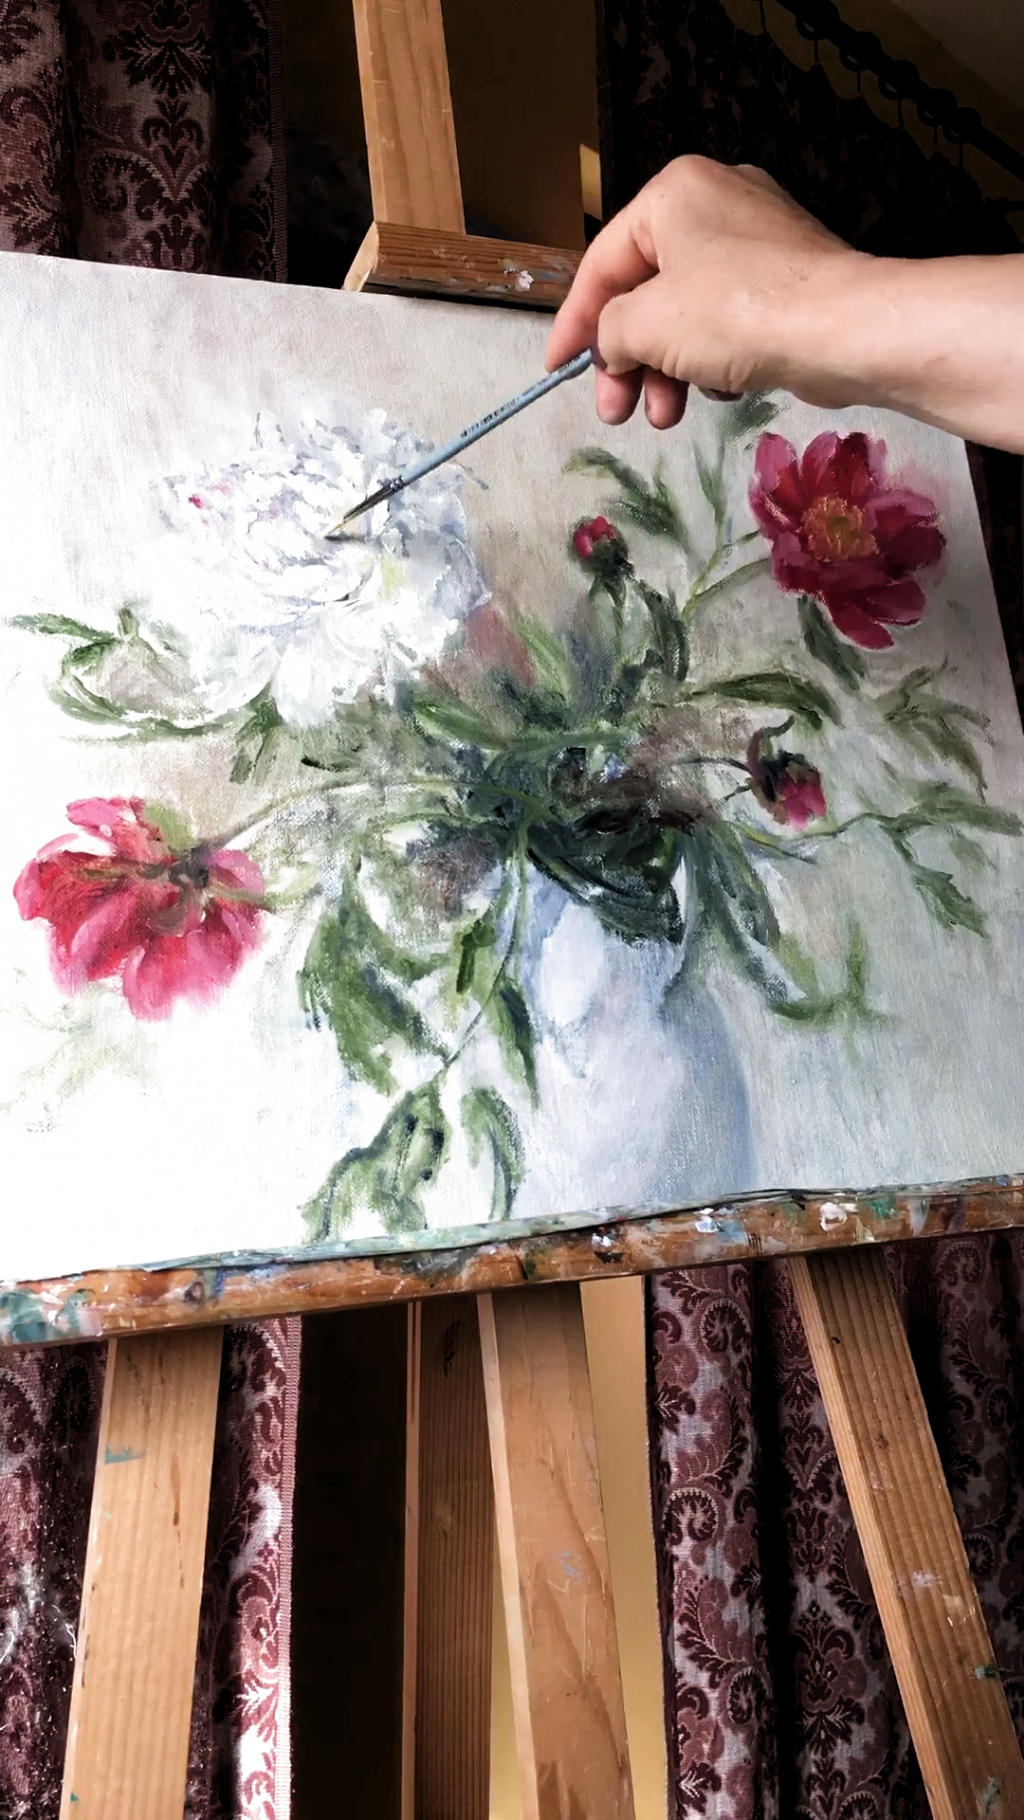 You can purchase this work on Etsy, just follow the link down below! ⤵️  #oilpainting #homedecor #painting #peony #peonies #videos #картина#живопись